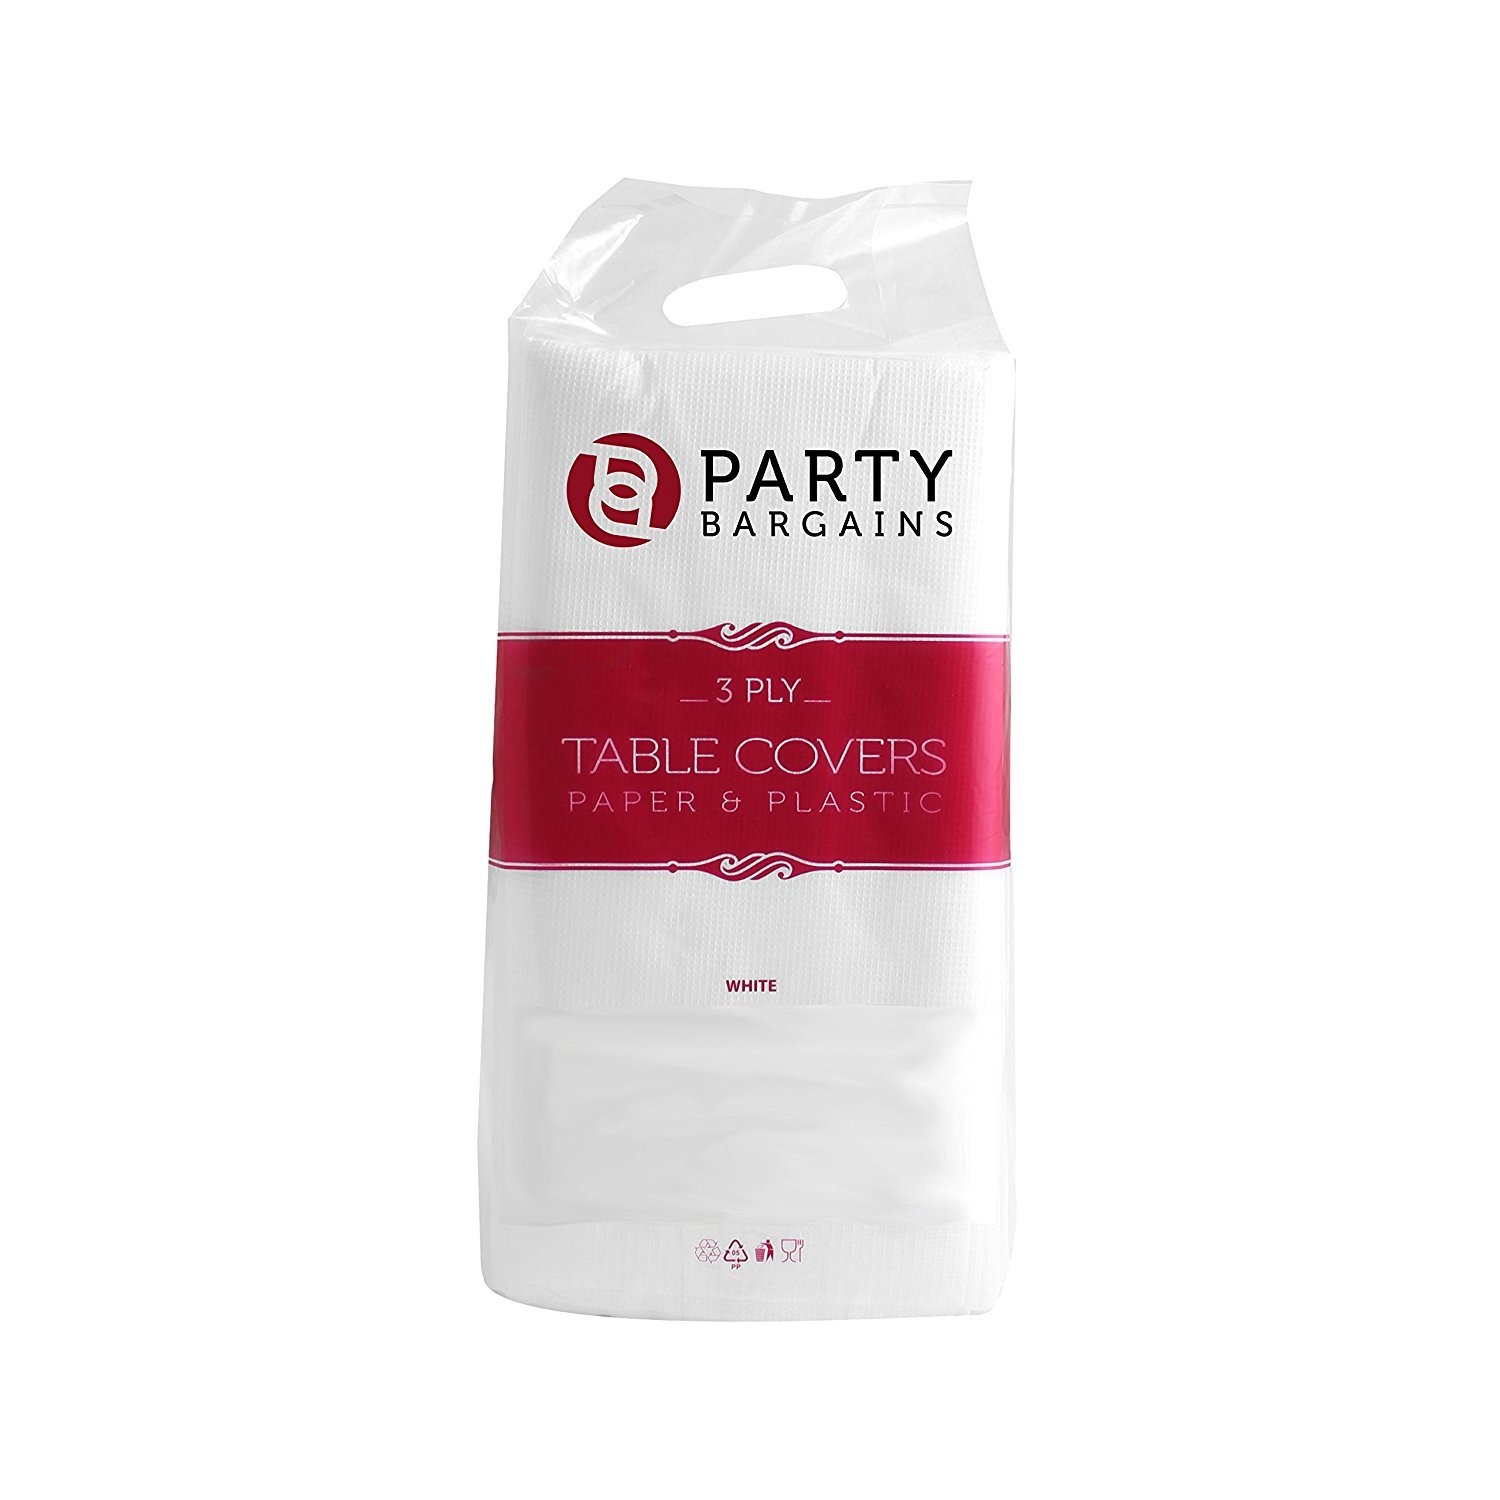 Party Bargains Disposable Table Cover | Classic White Paper 3 Ply Premium & Elegant Plastic Table Covers - Size 54'' X 108'' | Pack of 5 by Party Bargains (Image #4)